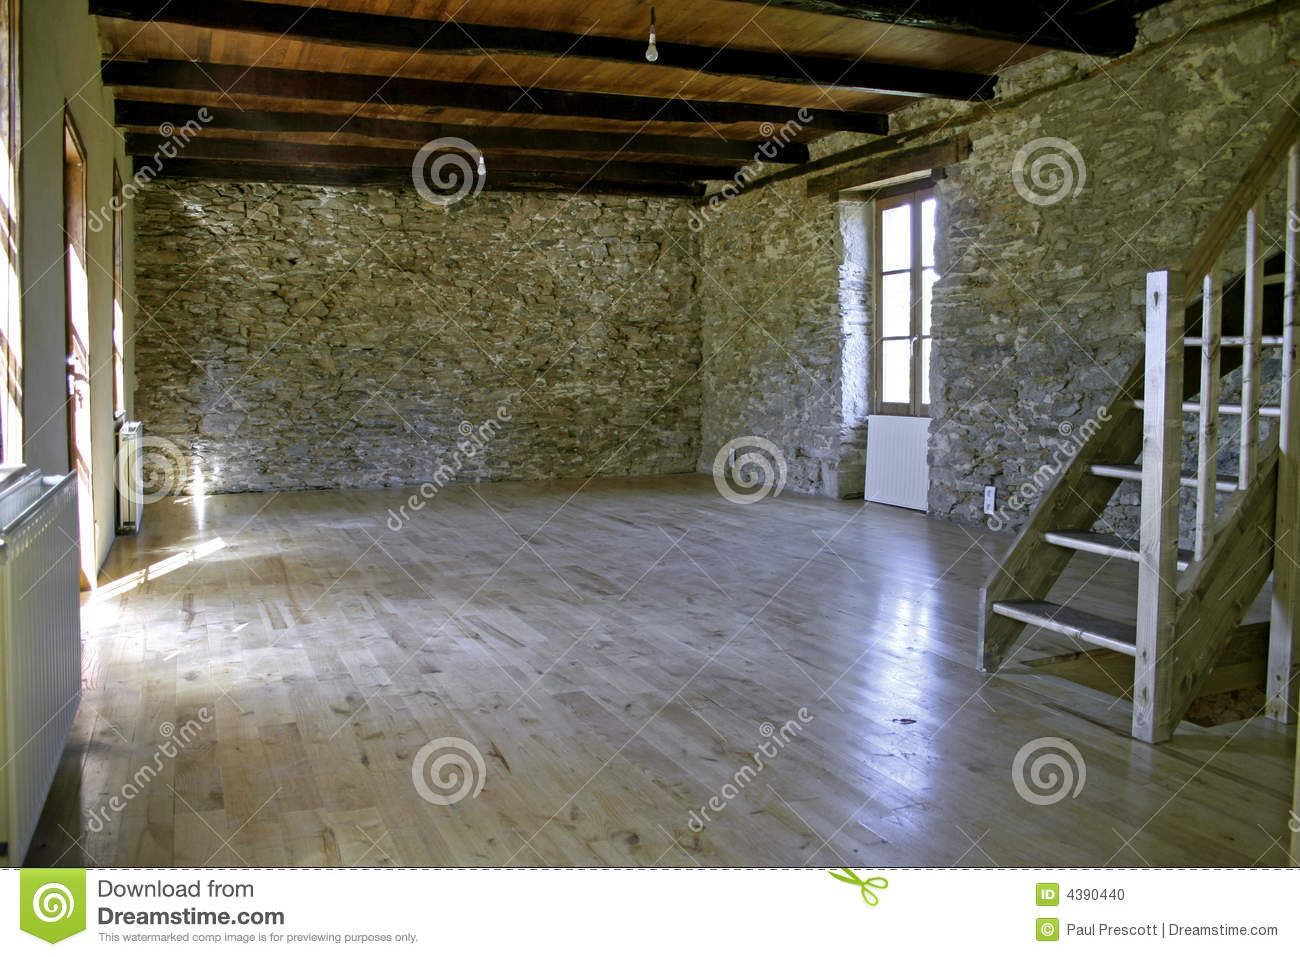 Maison en pierre r nov e photo stock image 4390440 - Renover mur en pierre interieur ...